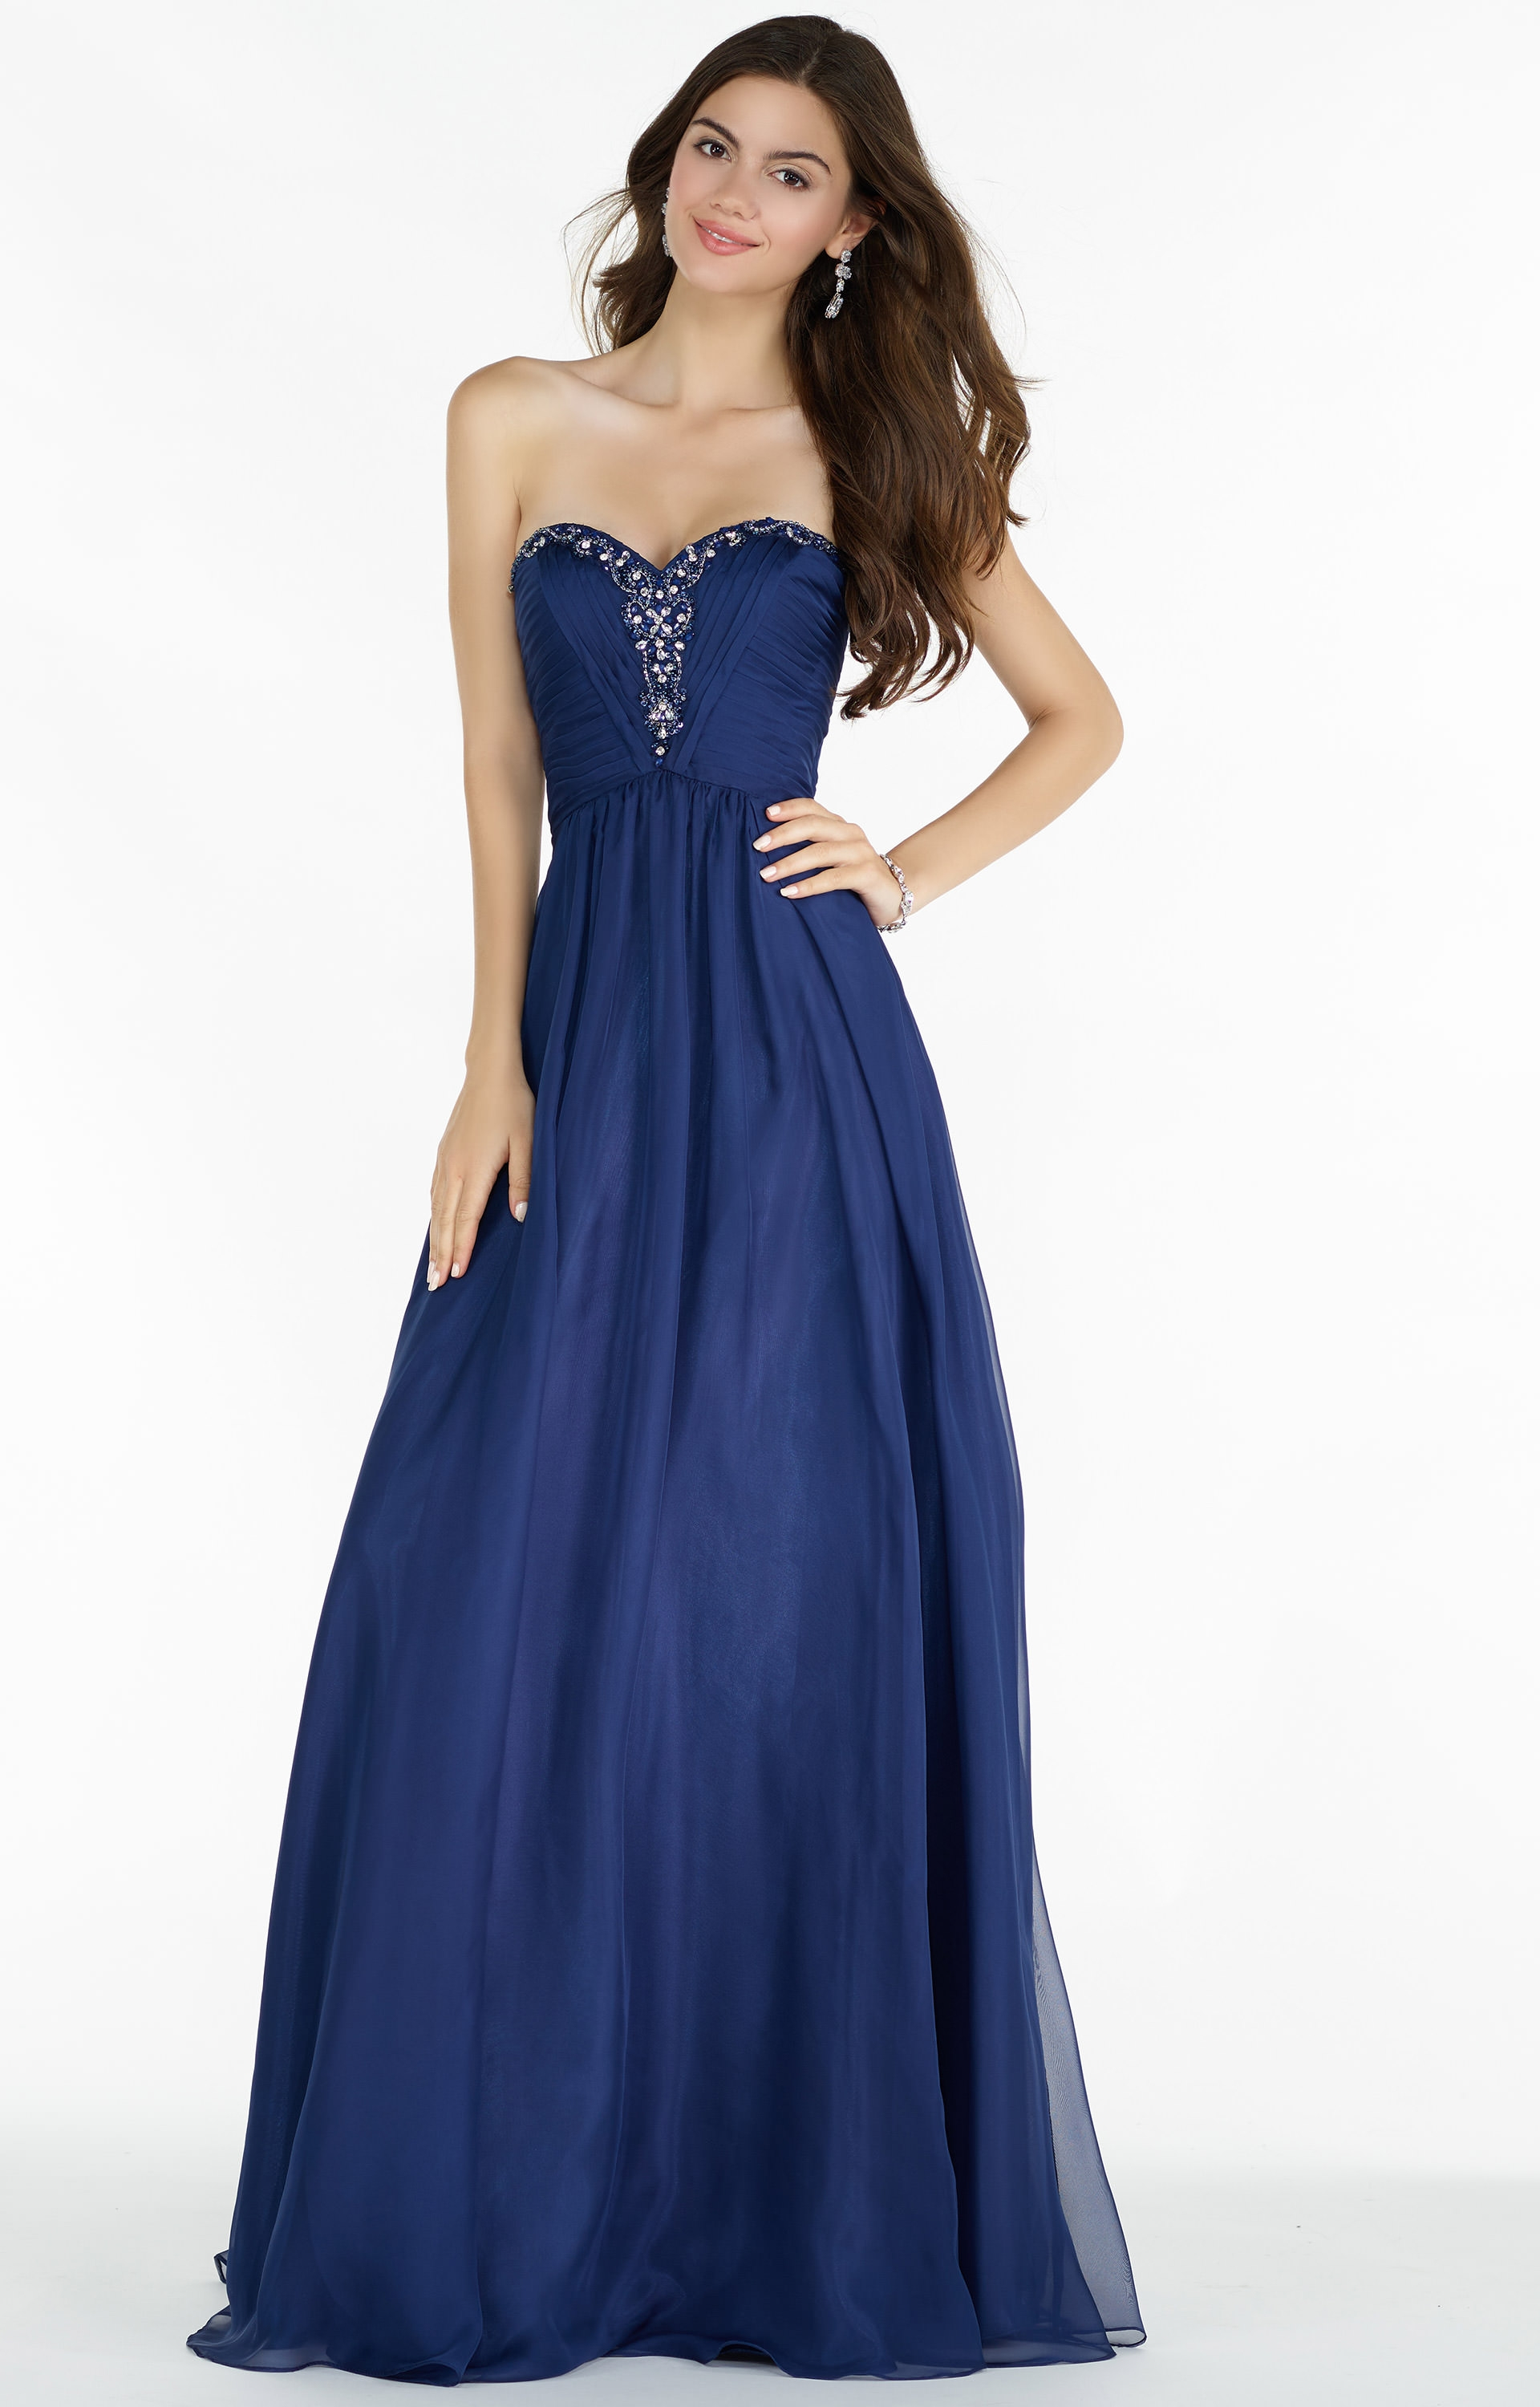 Alyce Paris 8022 Strapless Sweetheart Beaded Neckline